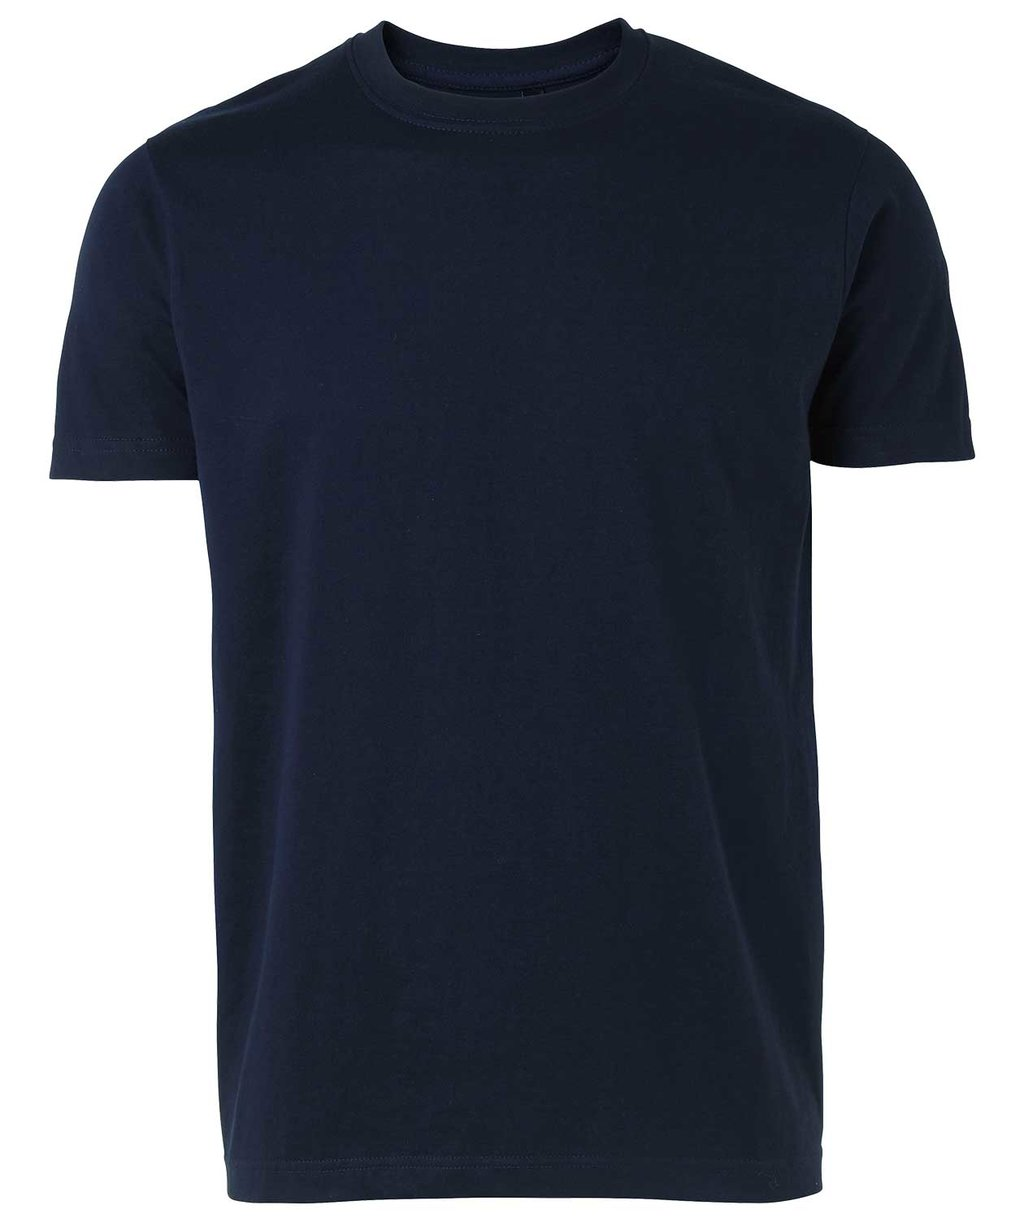 South West Basic unisex T-shirt, Navy